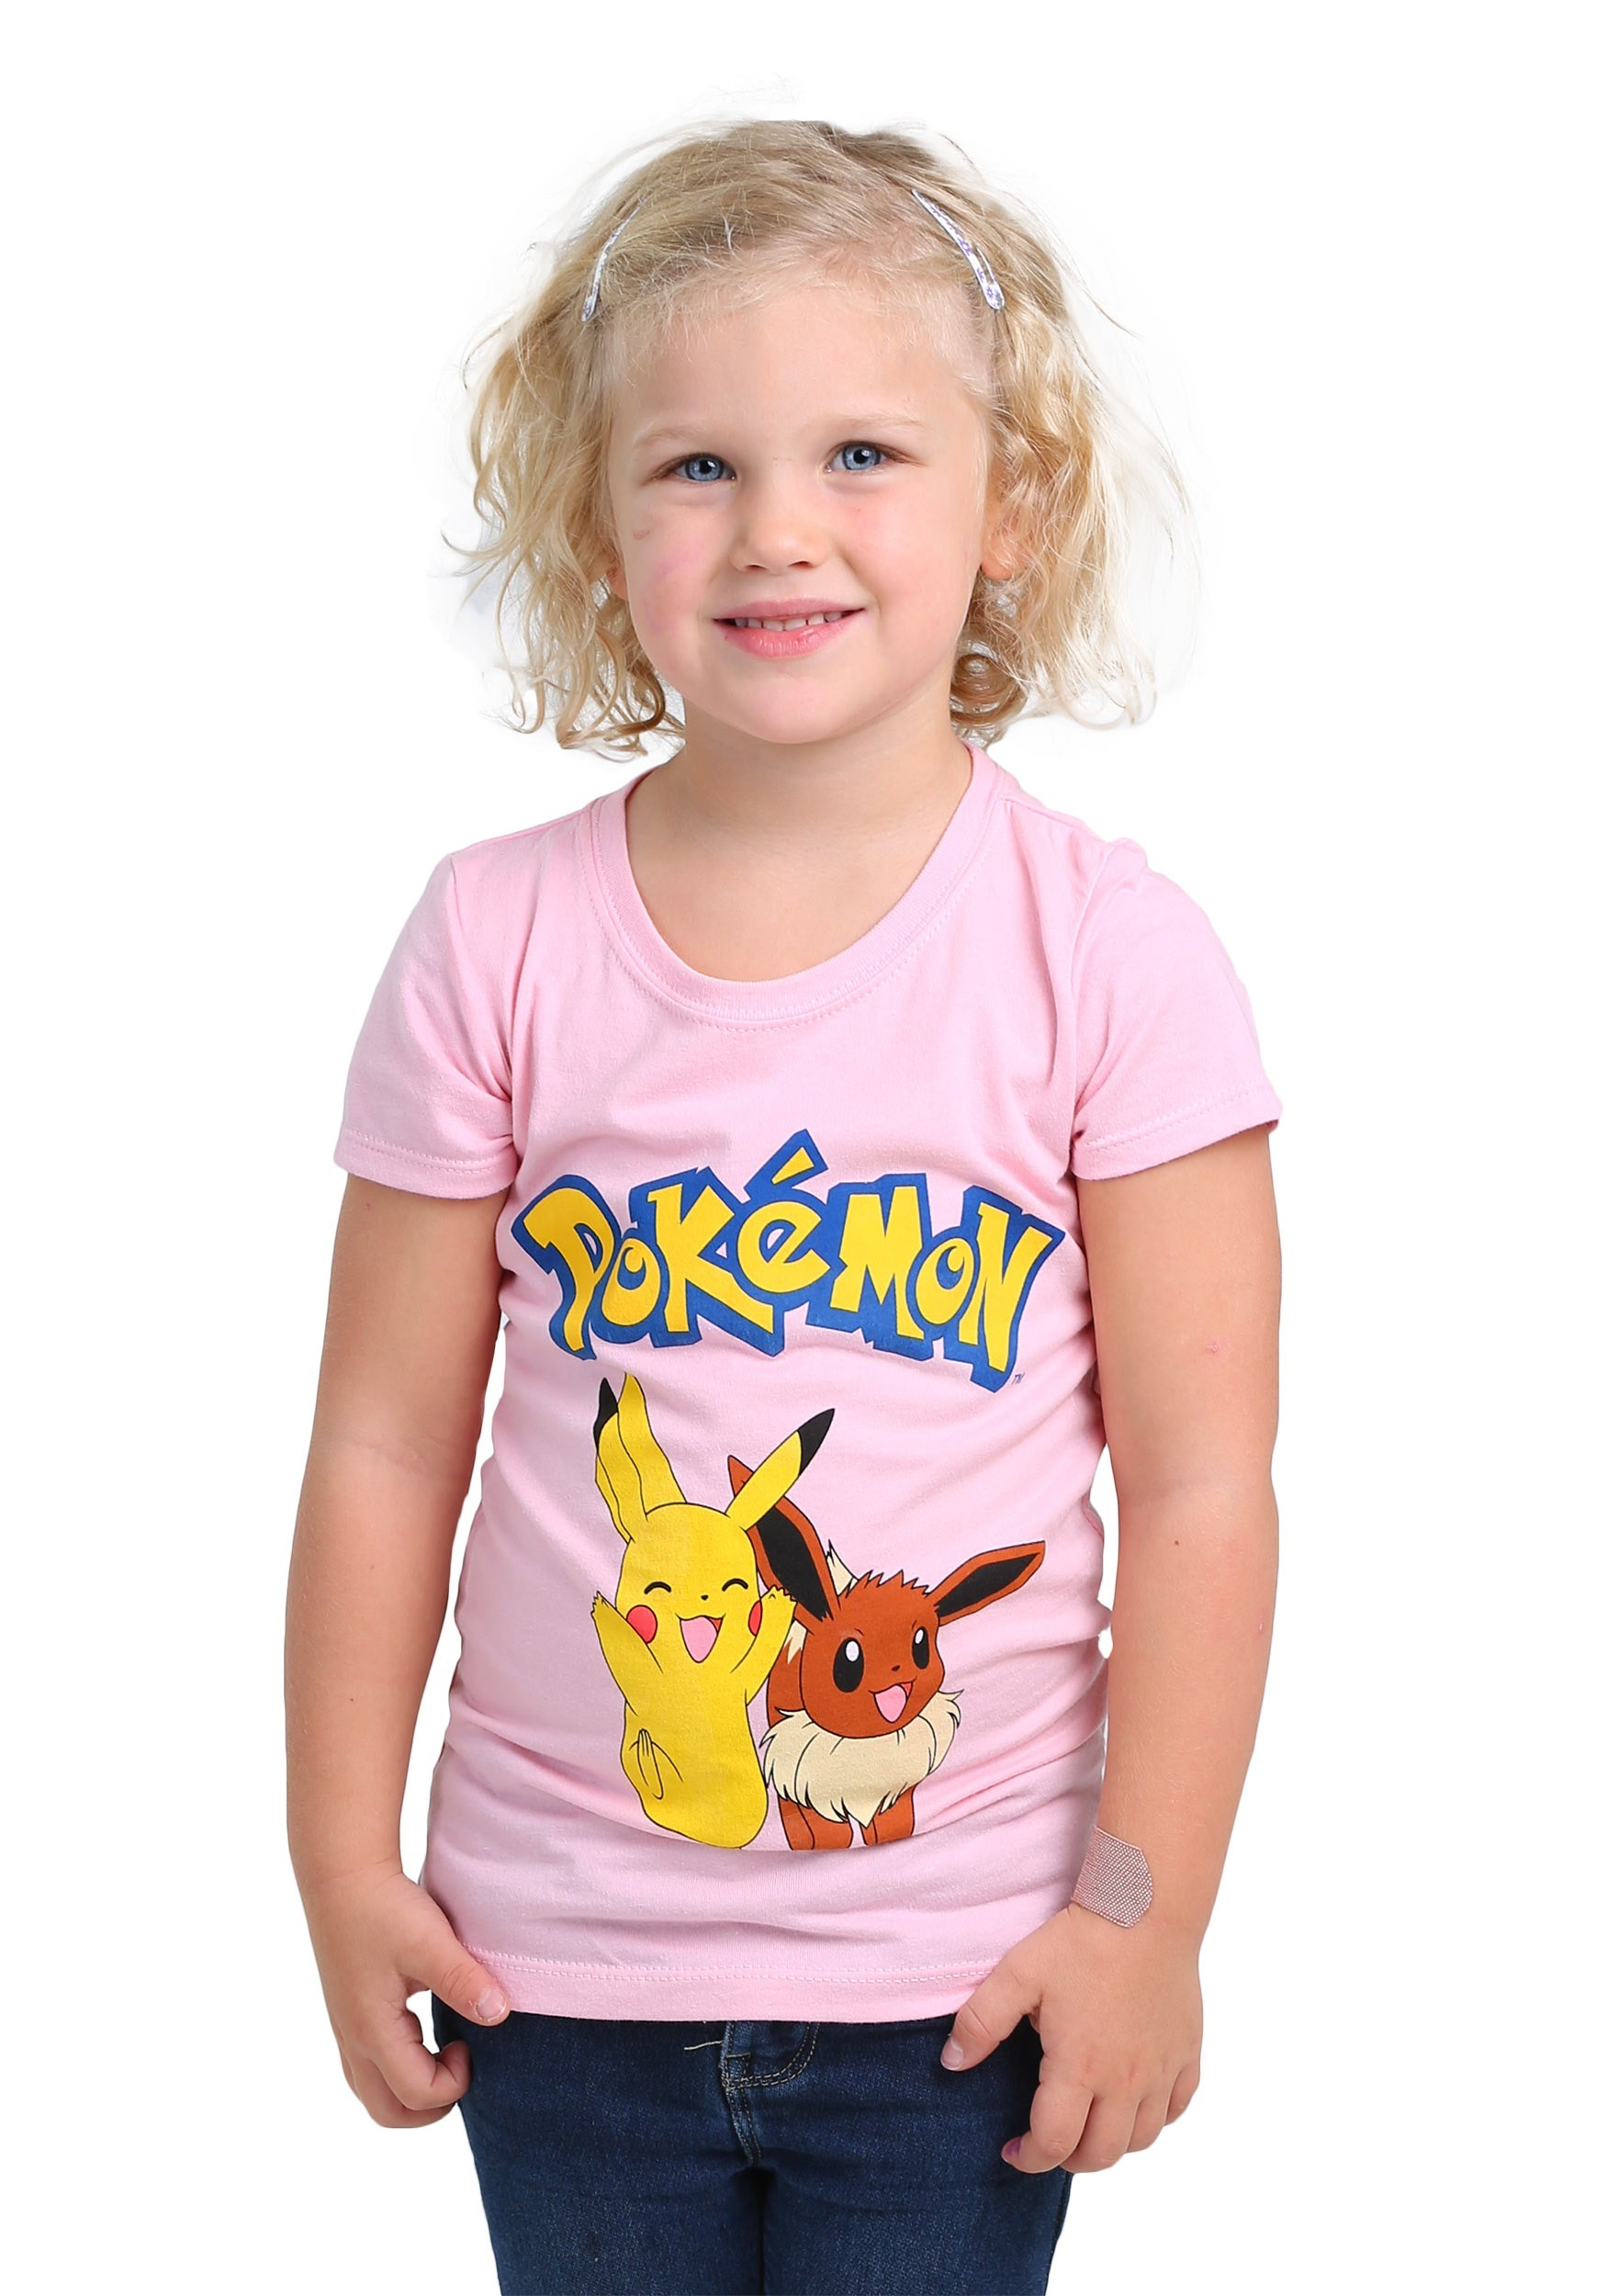 495e4006 Pikachu & Eevee Girls T-Shirt from Pokemon